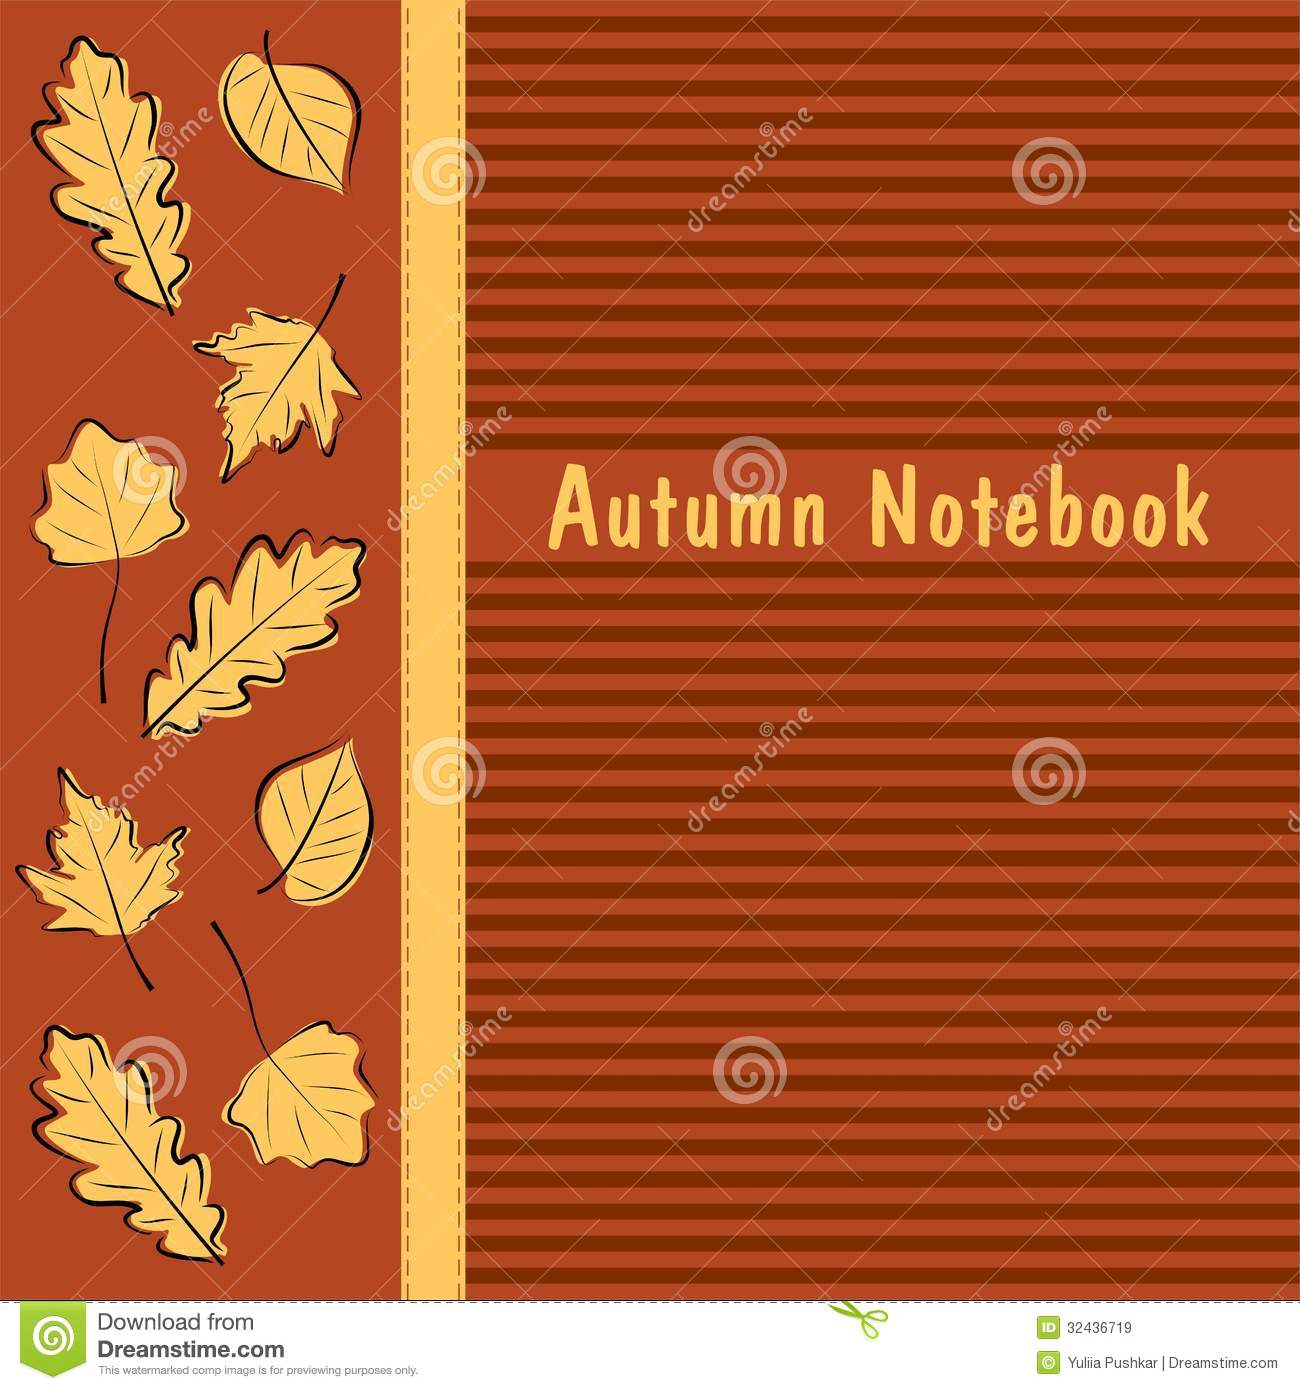 Notebook Cover Background : Autumn notebook cover royalty free stock images image